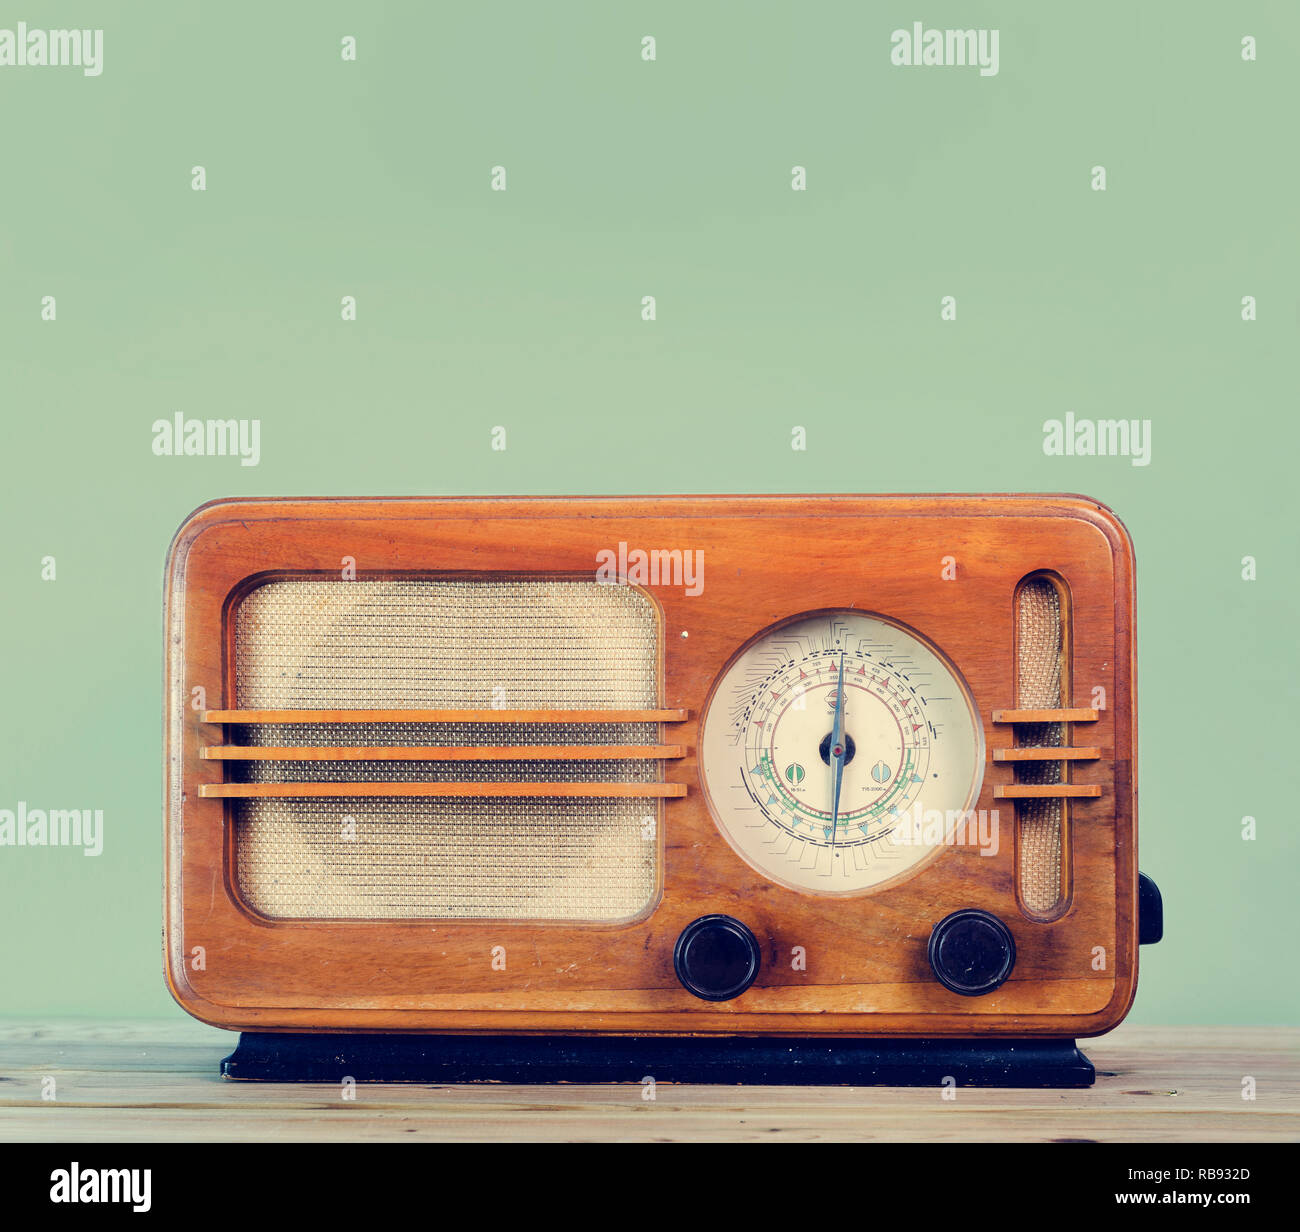 Old style vintage radio over retro mint background with copyspace design. - Stock Image